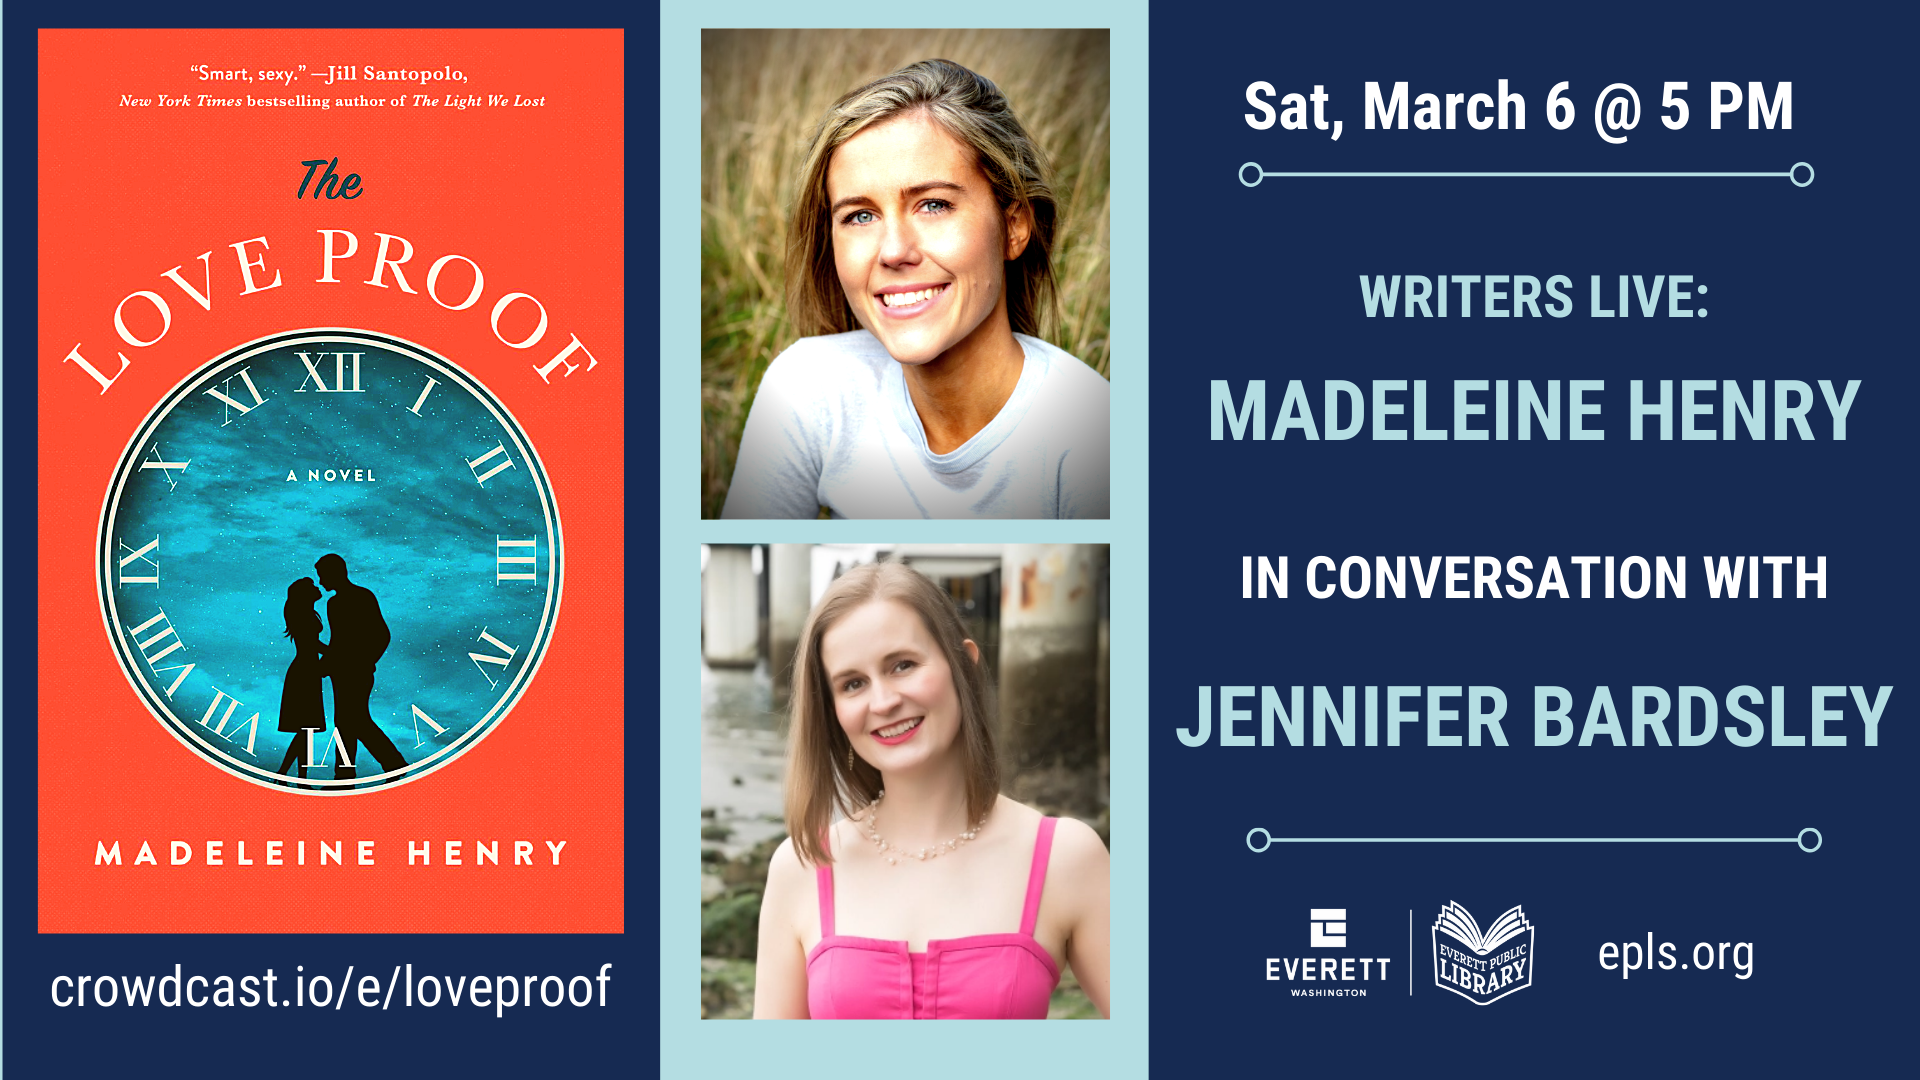 Everett Public Library: Madeline Henry in conversation with Jennifer Bardsley - The Love Proof